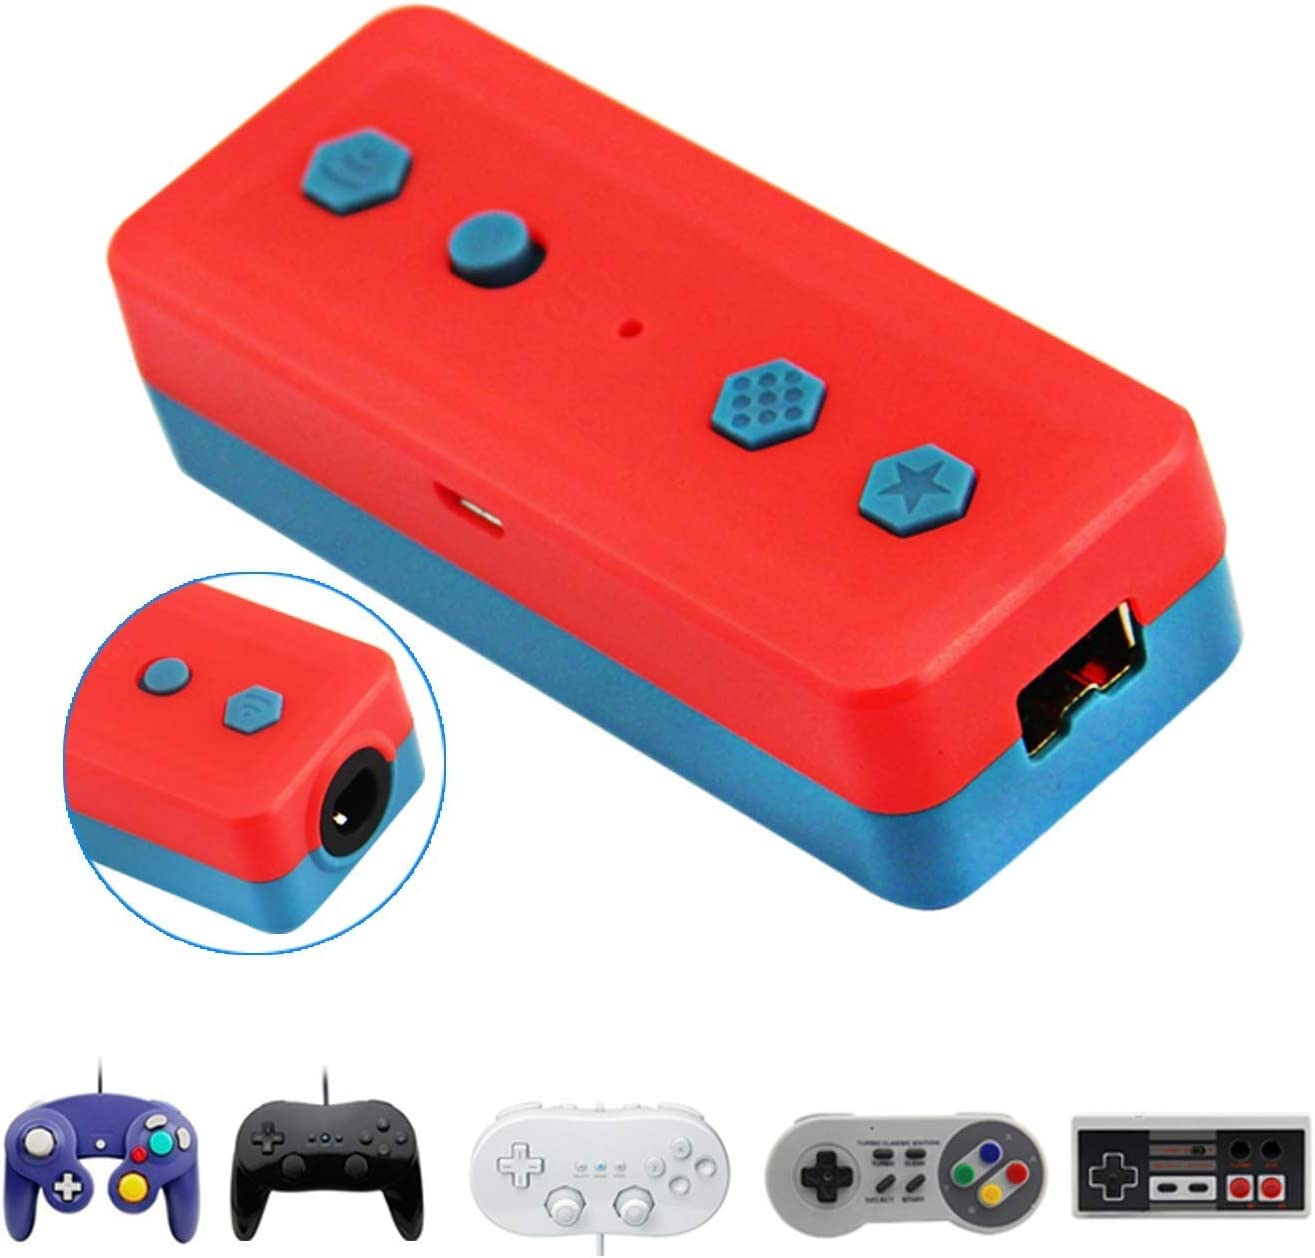 Wireless Bluetooth Adapter for Nintendo Switch & PC Windows, Works with Gamecube NGC Controller, NES/SNES/Wii Classic Controller & Other Same Wii Port Controllers